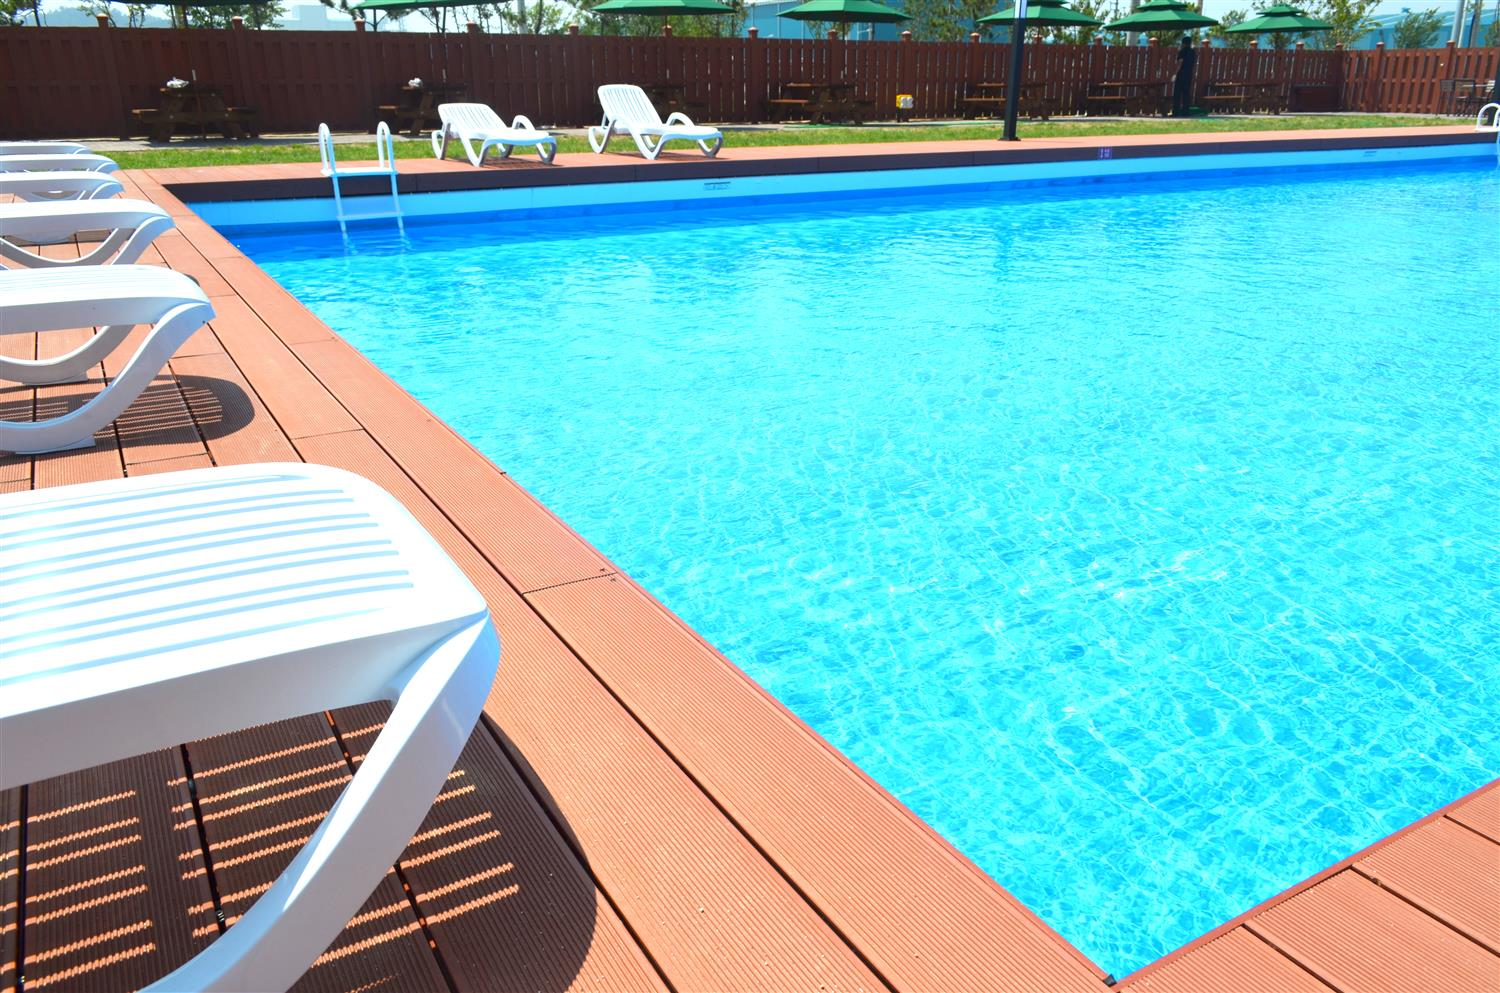 Pool : Outdoor Swimming Pool 16 of 152